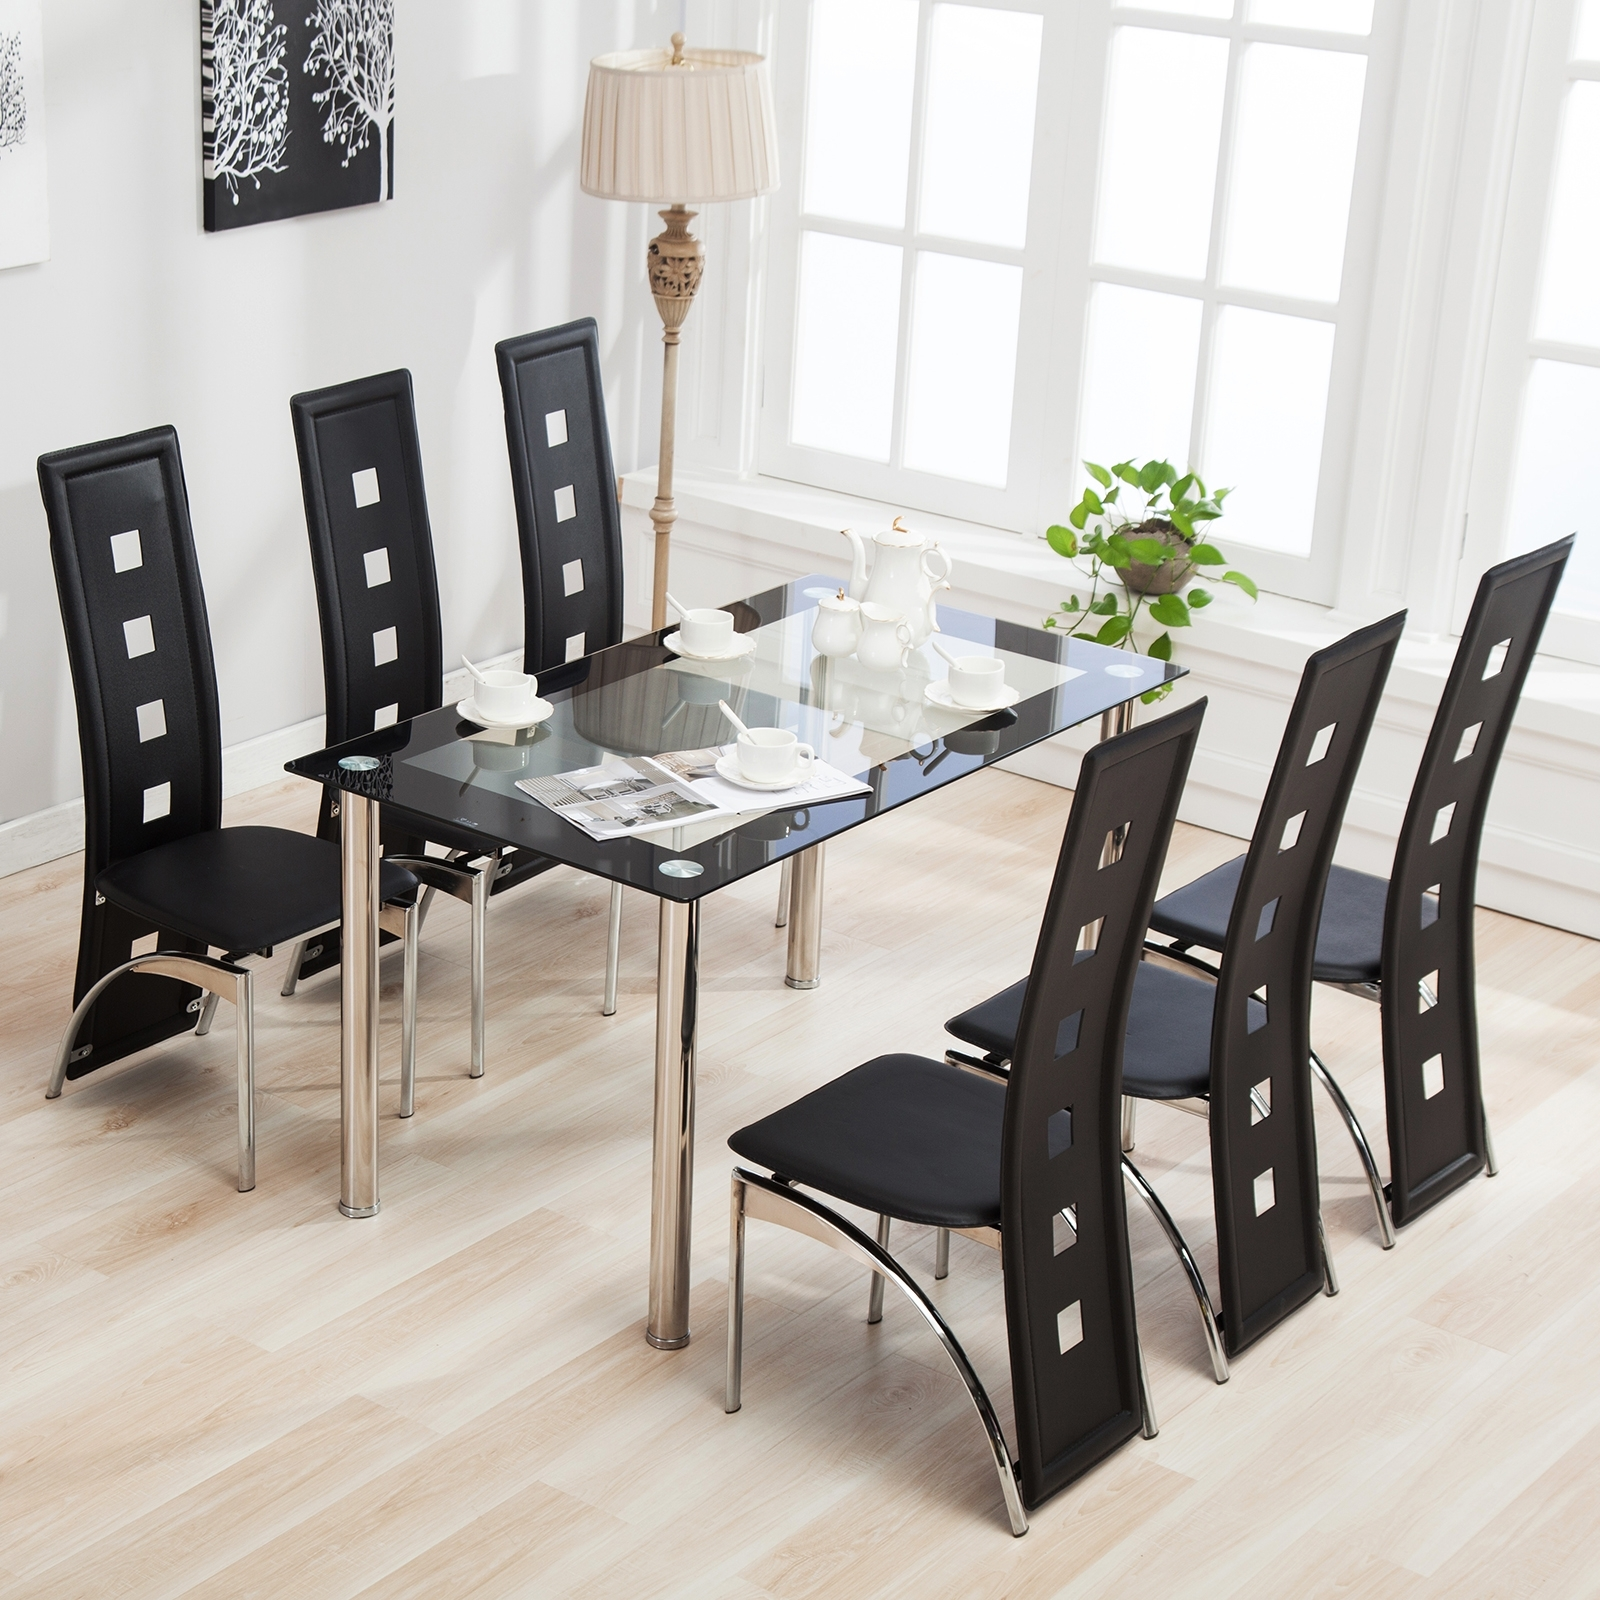 Preferred Mecor 7Pcs Dining Table Set 6 Chairs Glass Metal Kitchen Room Regarding Black Glass Dining Tables With 6 Chairs (Gallery 13 of 25)